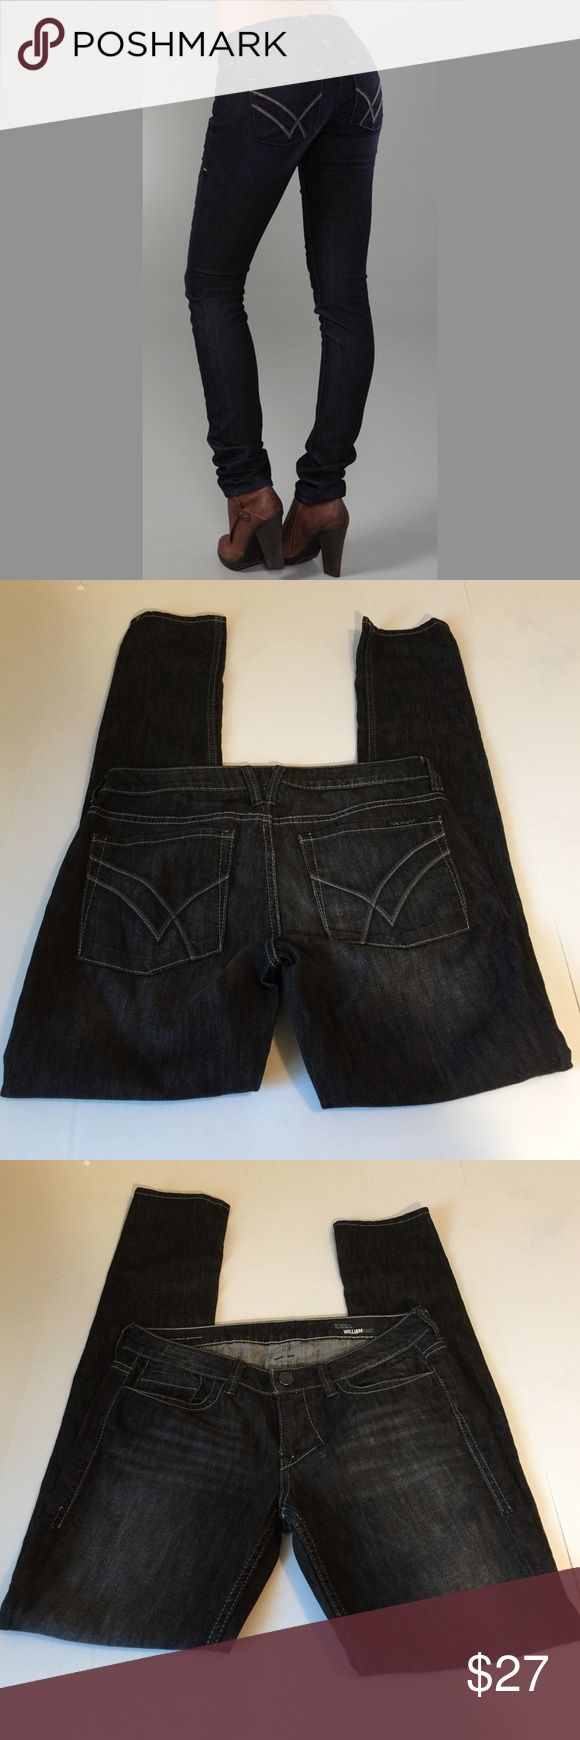 William Rast Jerri Ultra Skinny Jeans, size 29 William Rast Jerri Ultra Skinny Jeans in size 29. Color is a charcoal gray black. Flat lay measure of the waist is 16. Rise is 8, inseam is 34, and leg opening is 6. Made from 99% cotton and 1% spandex. Features factory fading. In excellent condition, please ask if you have any questions. Jeans Skinny